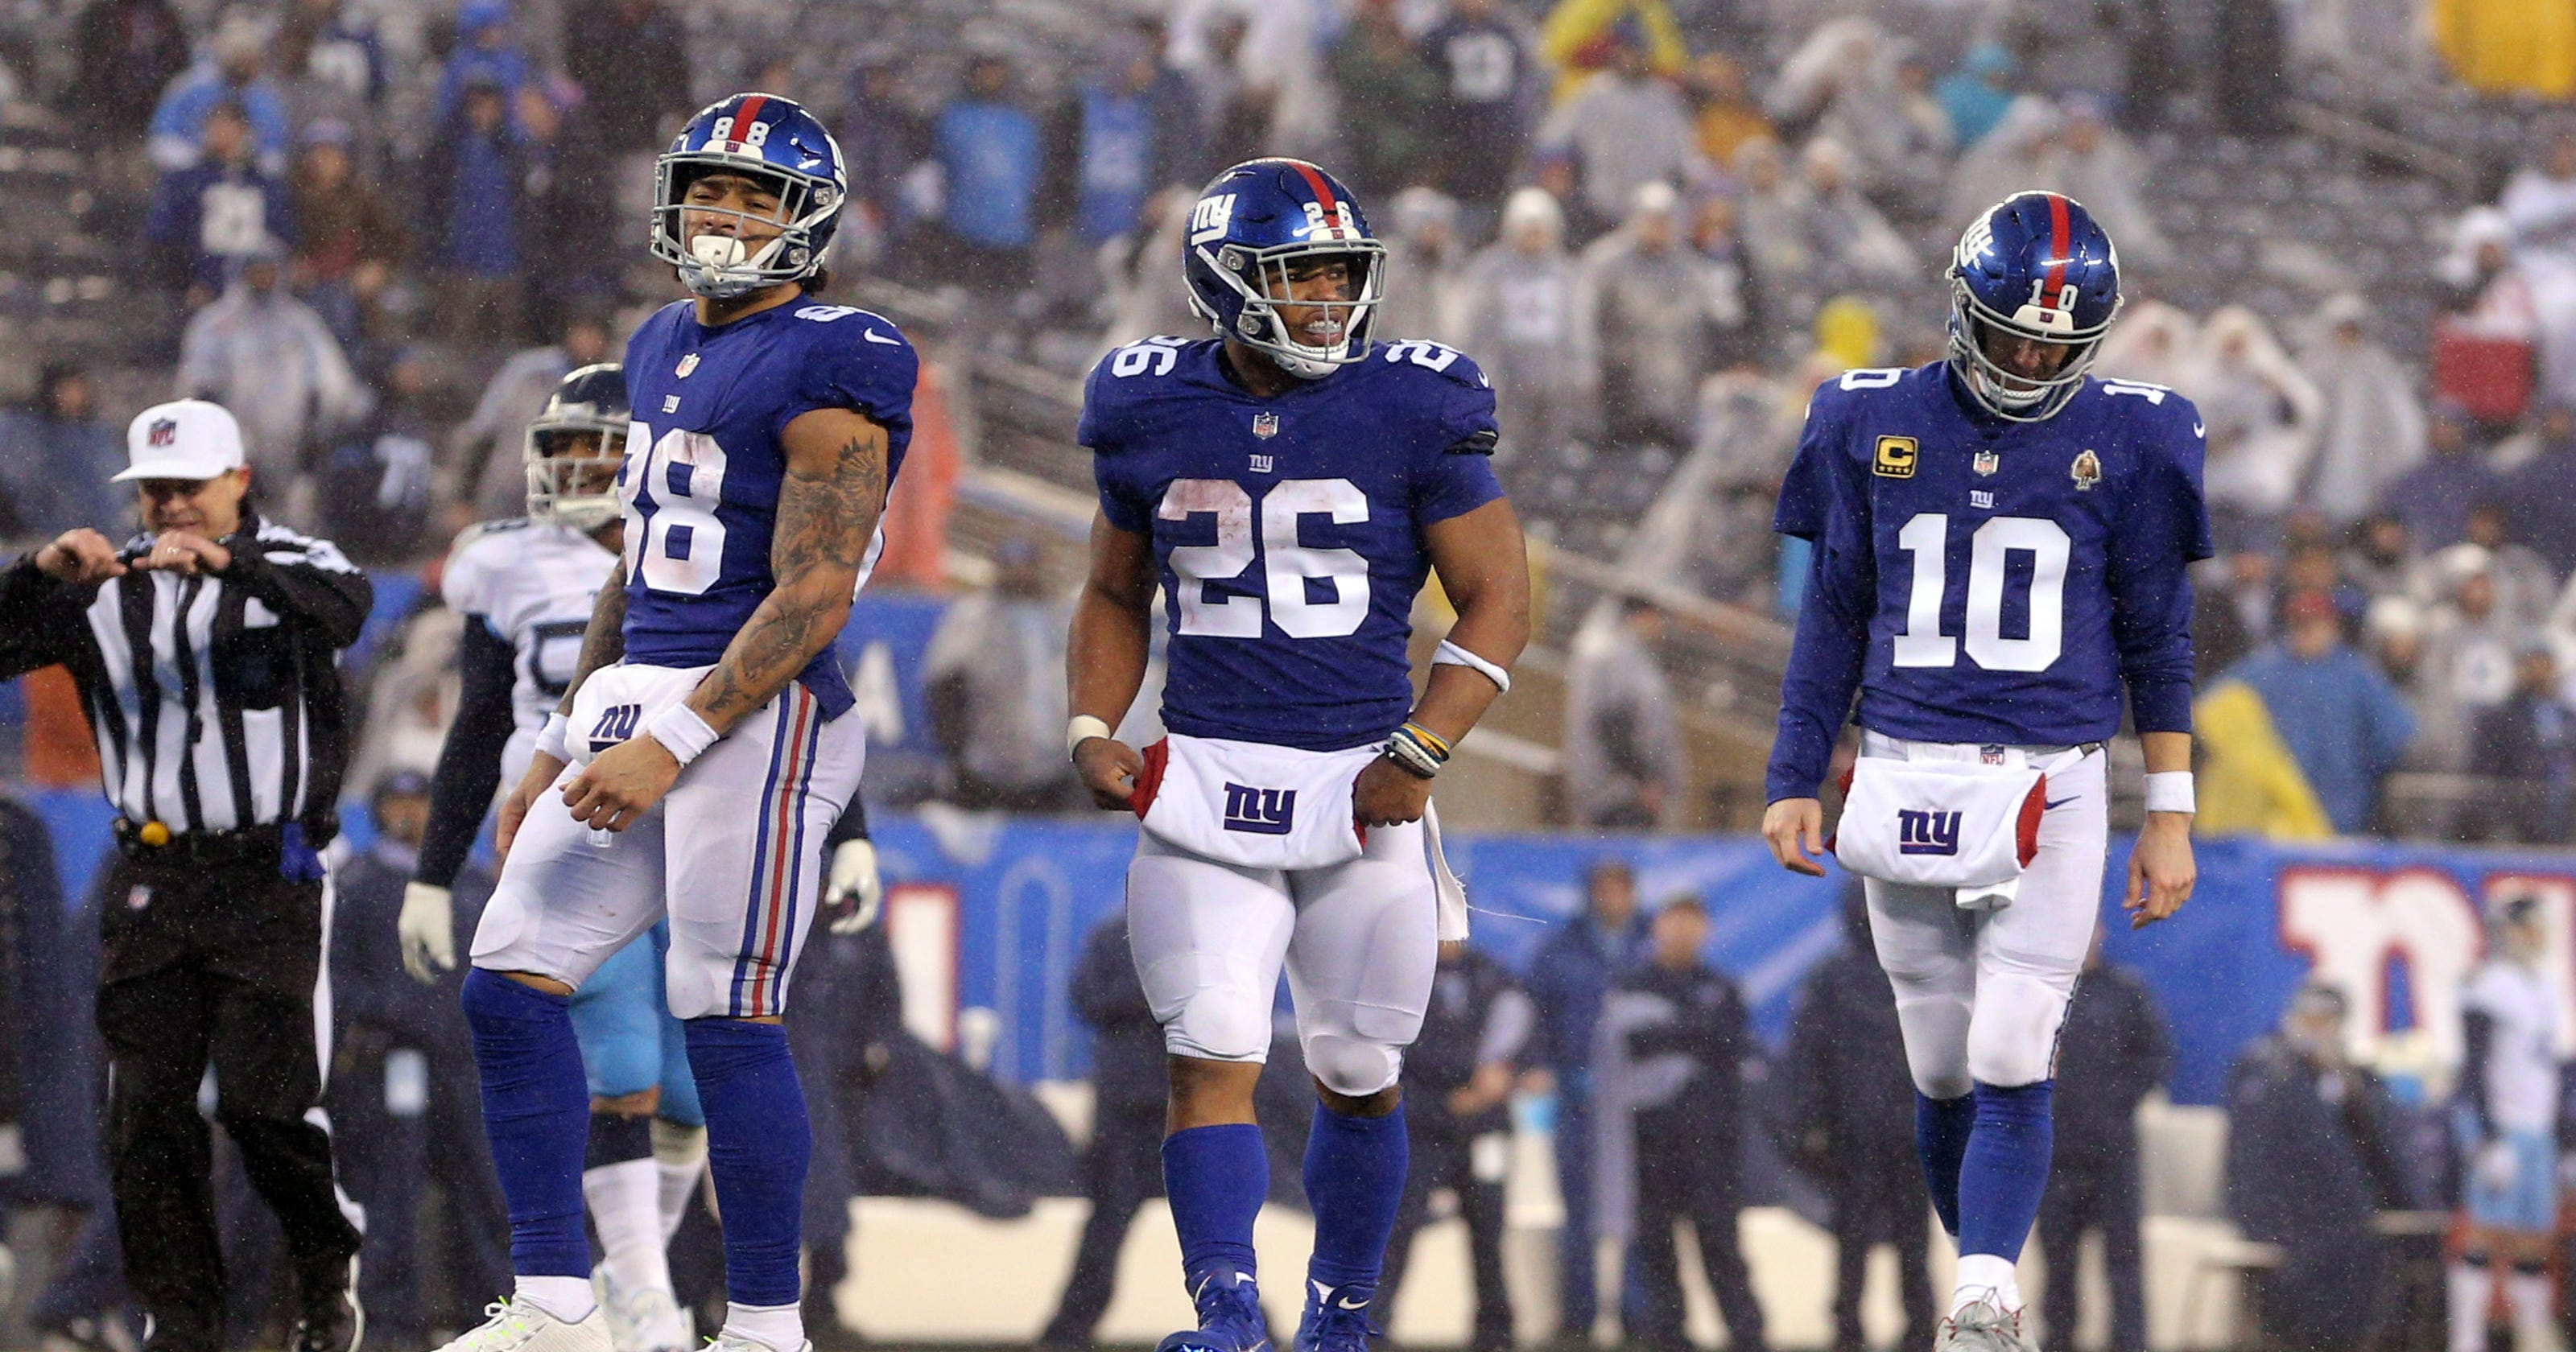 d2f81fa946a Here are 5 New York Giants storylines as we enter 2019